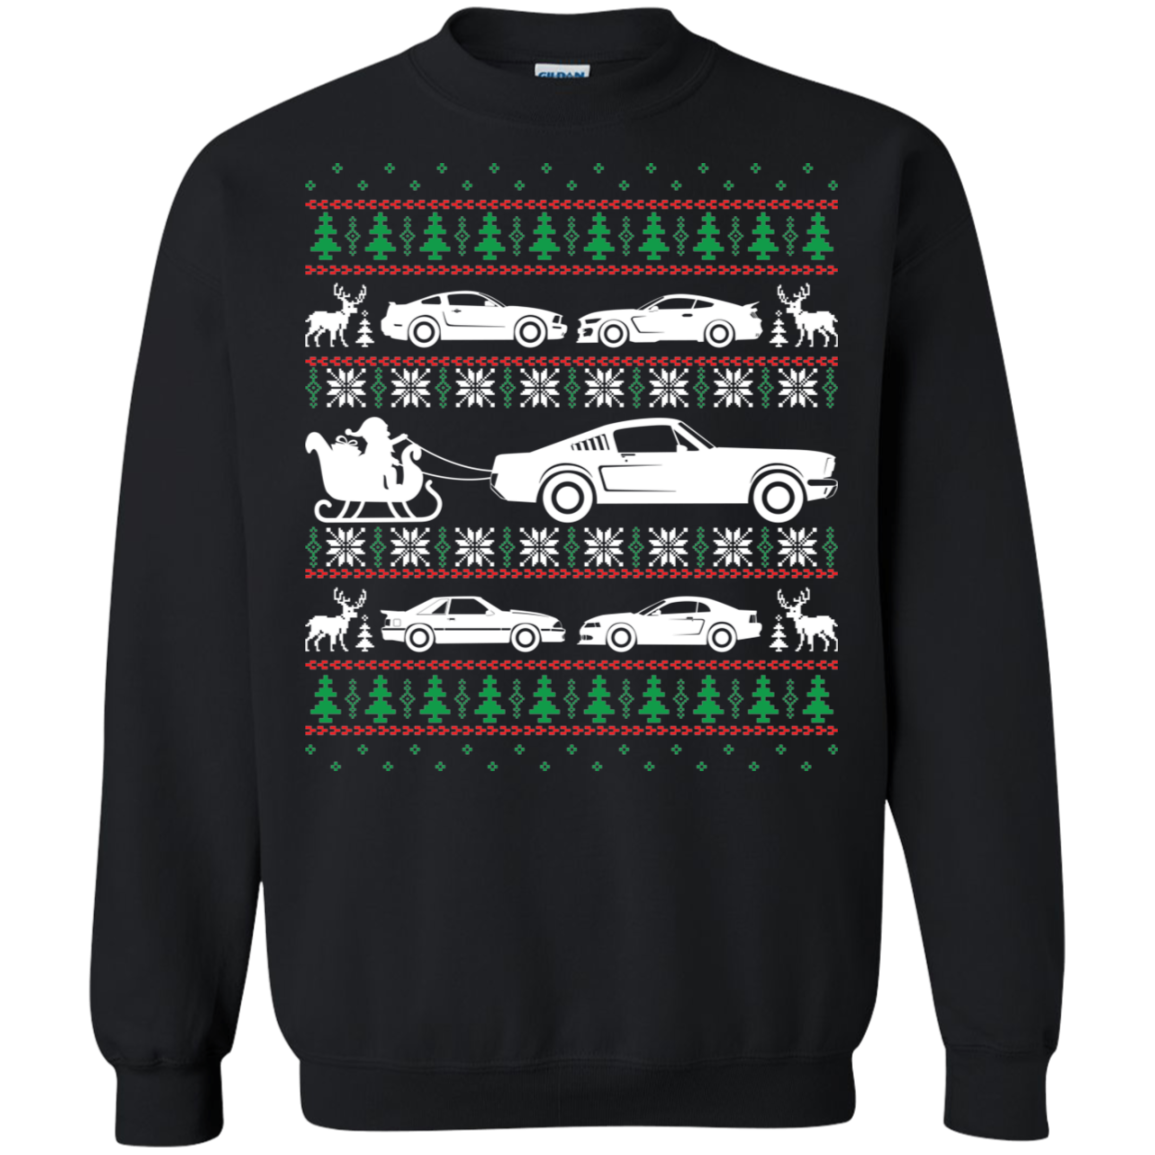 Ford Mustang Ugly Christmas Sweater Pullover Sweatshirt  Foxbody Ford S550 S197 SN95 New Edge